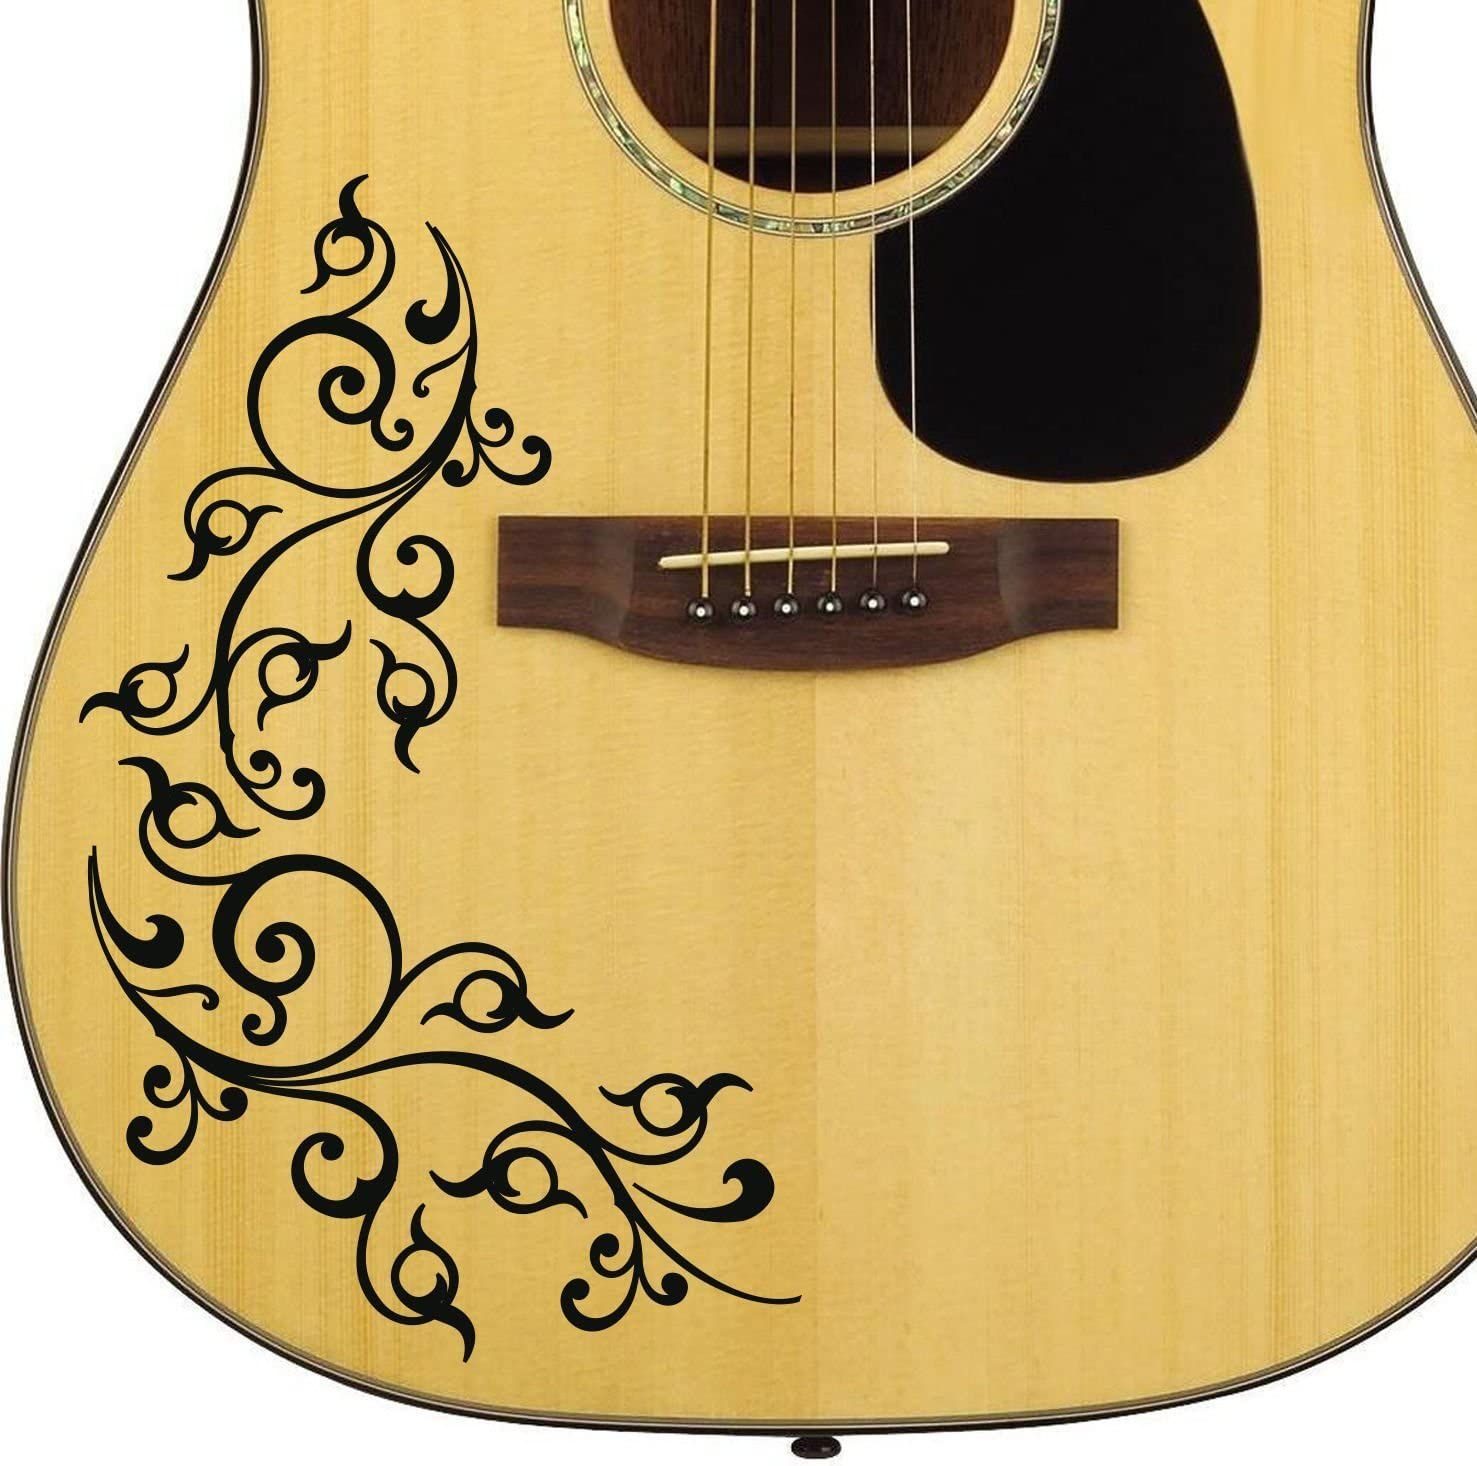 Acoustic Guitar Floral Swirl Decal Sticker For Guitar Amazon Co Uk Musical Instruments Guitar Stickers Guitar Design Guitar Drawing